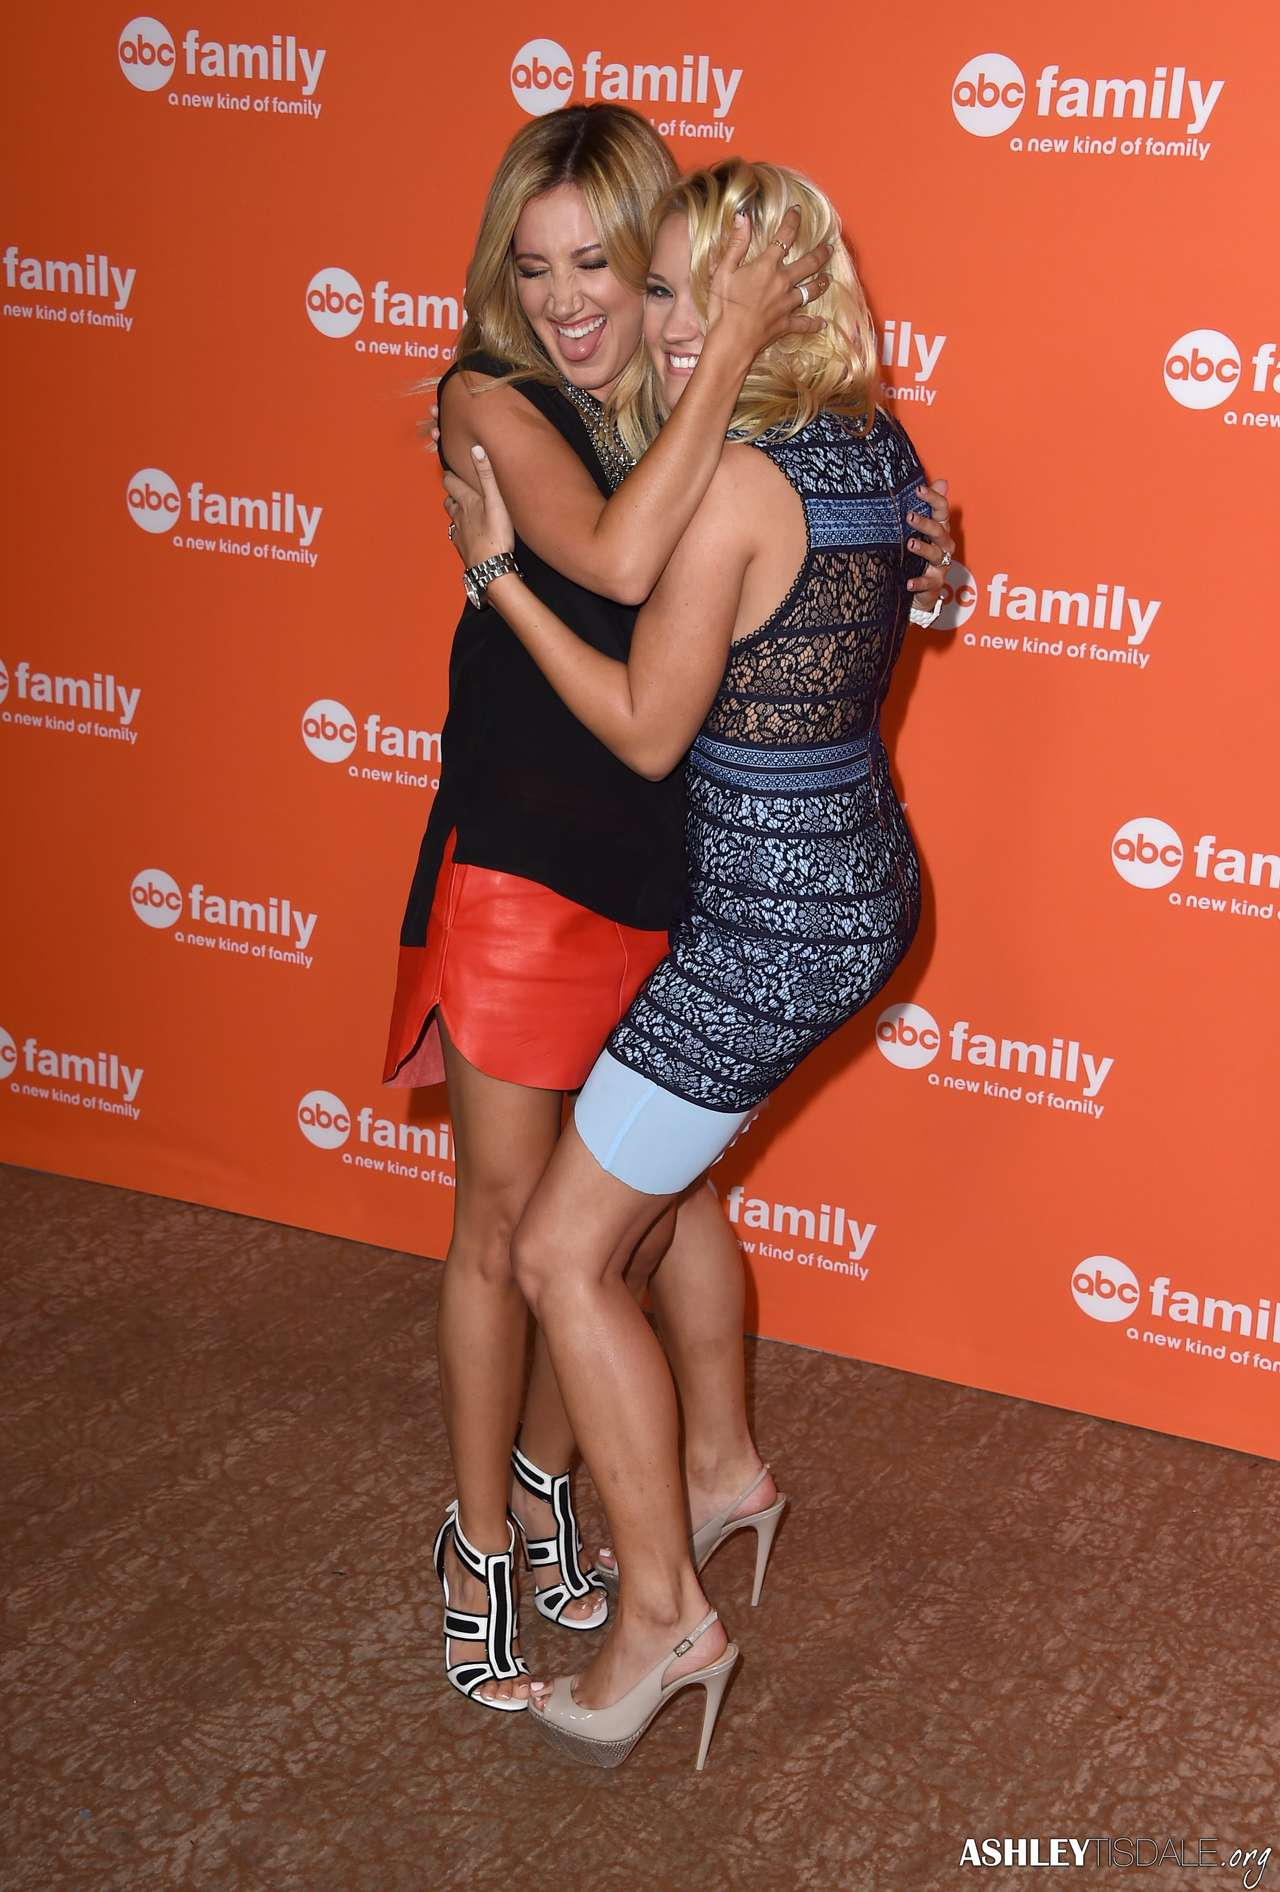 Ashley Tisdale 2014 : Ashley Tisdale at 2014 Disney ABC TCA Summer Press Tour in Beverly Hills -15